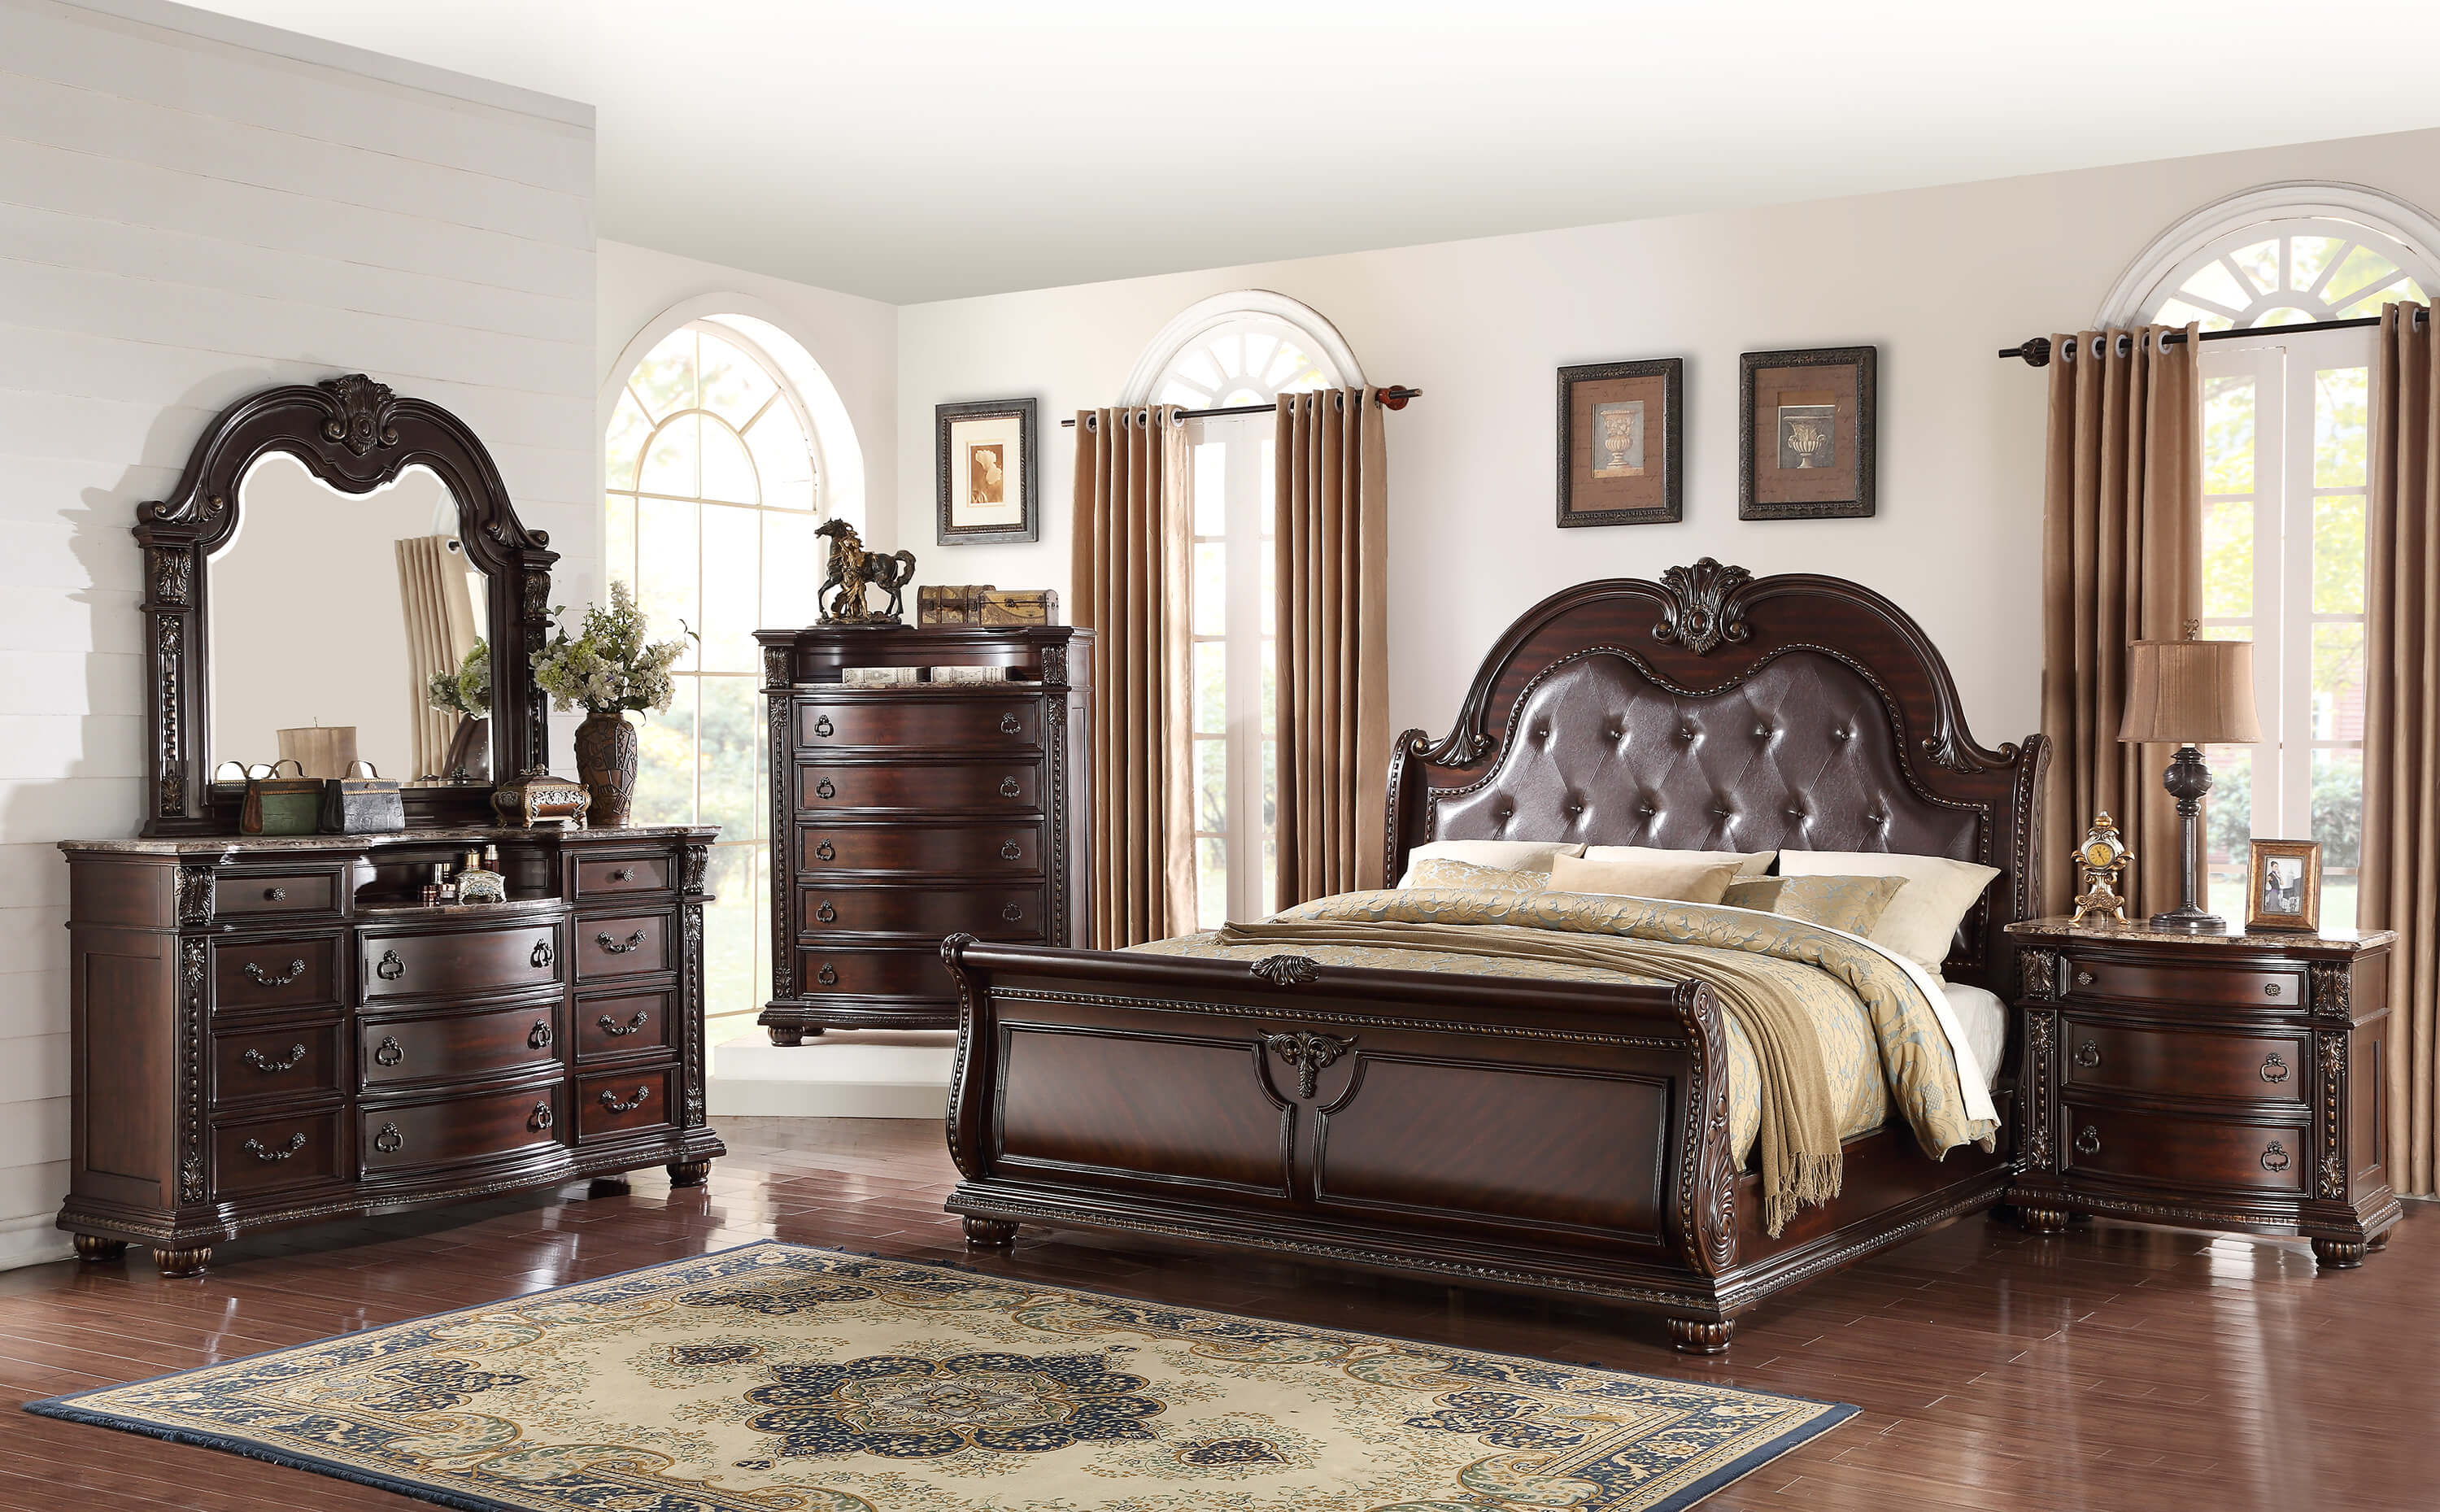 Stanley marble top bedroom set bedroom furniture sets for Front room furniture sets